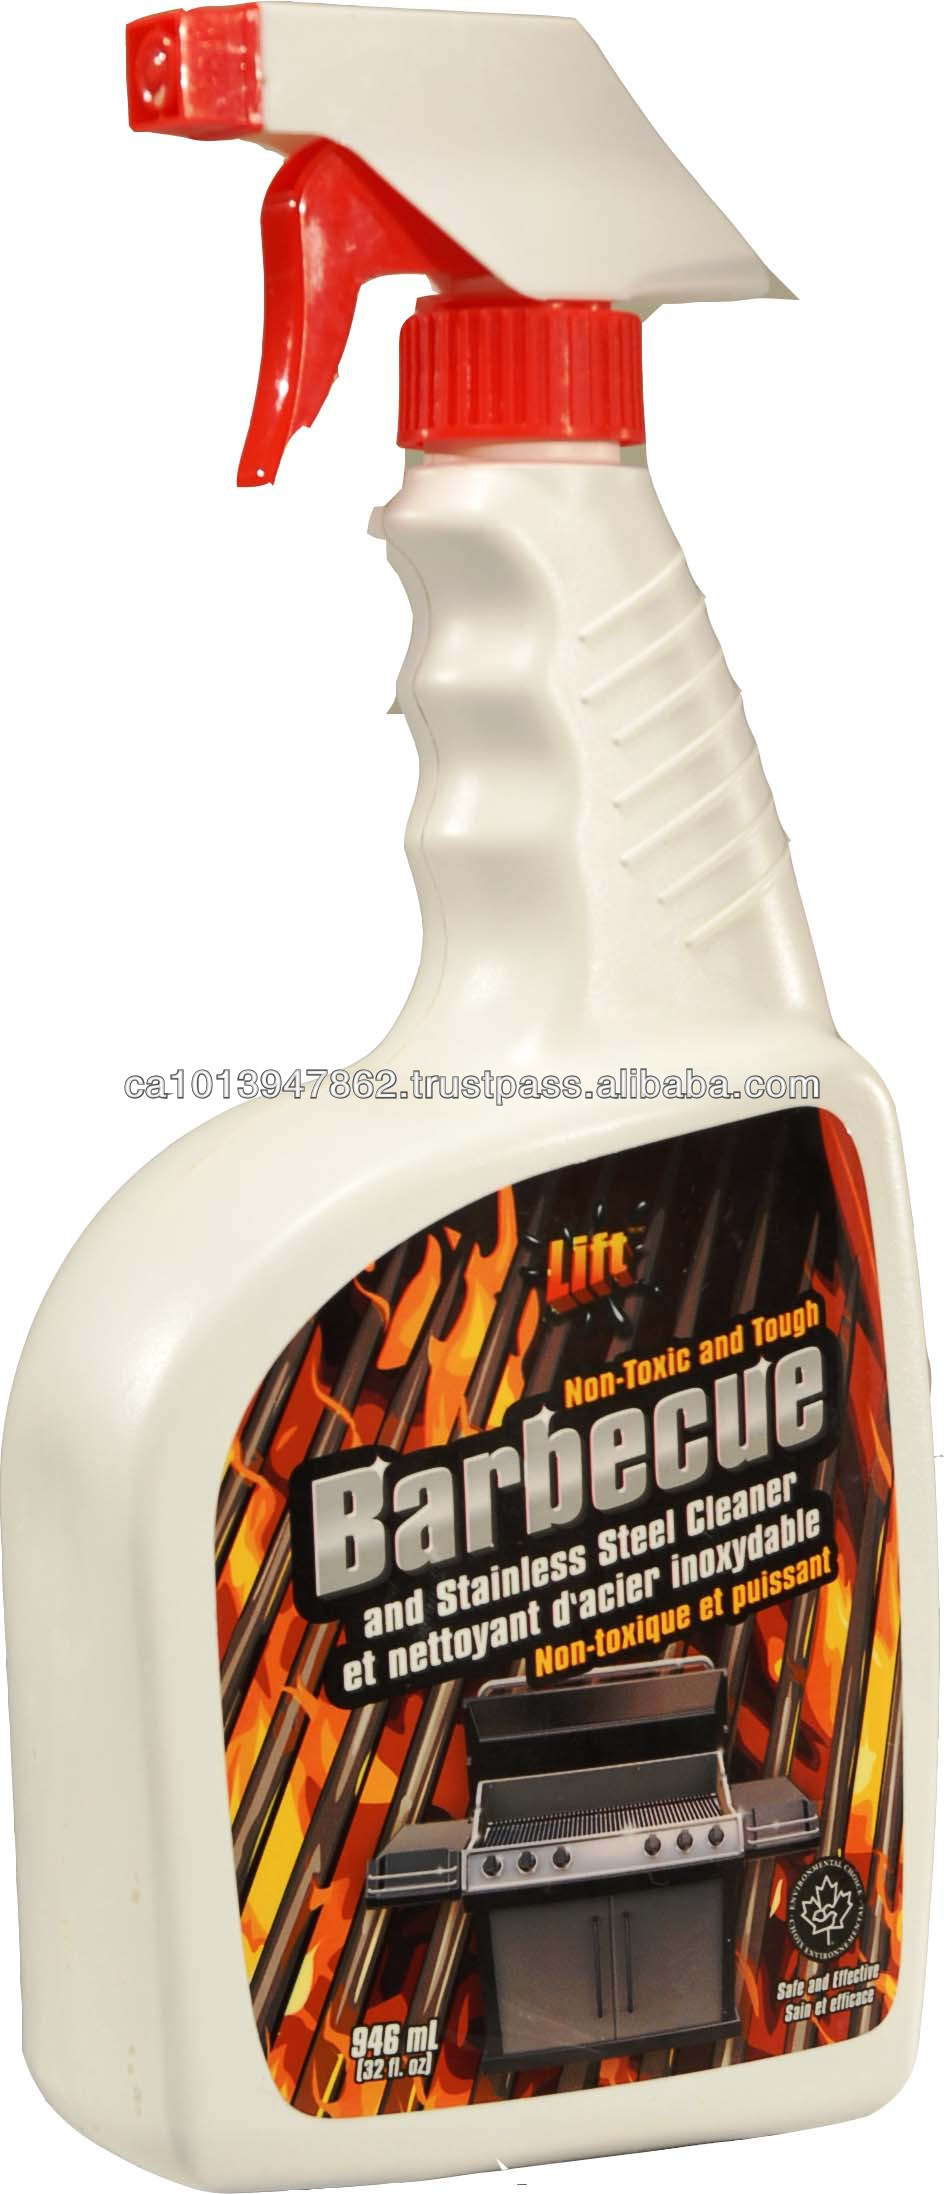 Non-Toxic BBQ & Stainless Steel Cleaner